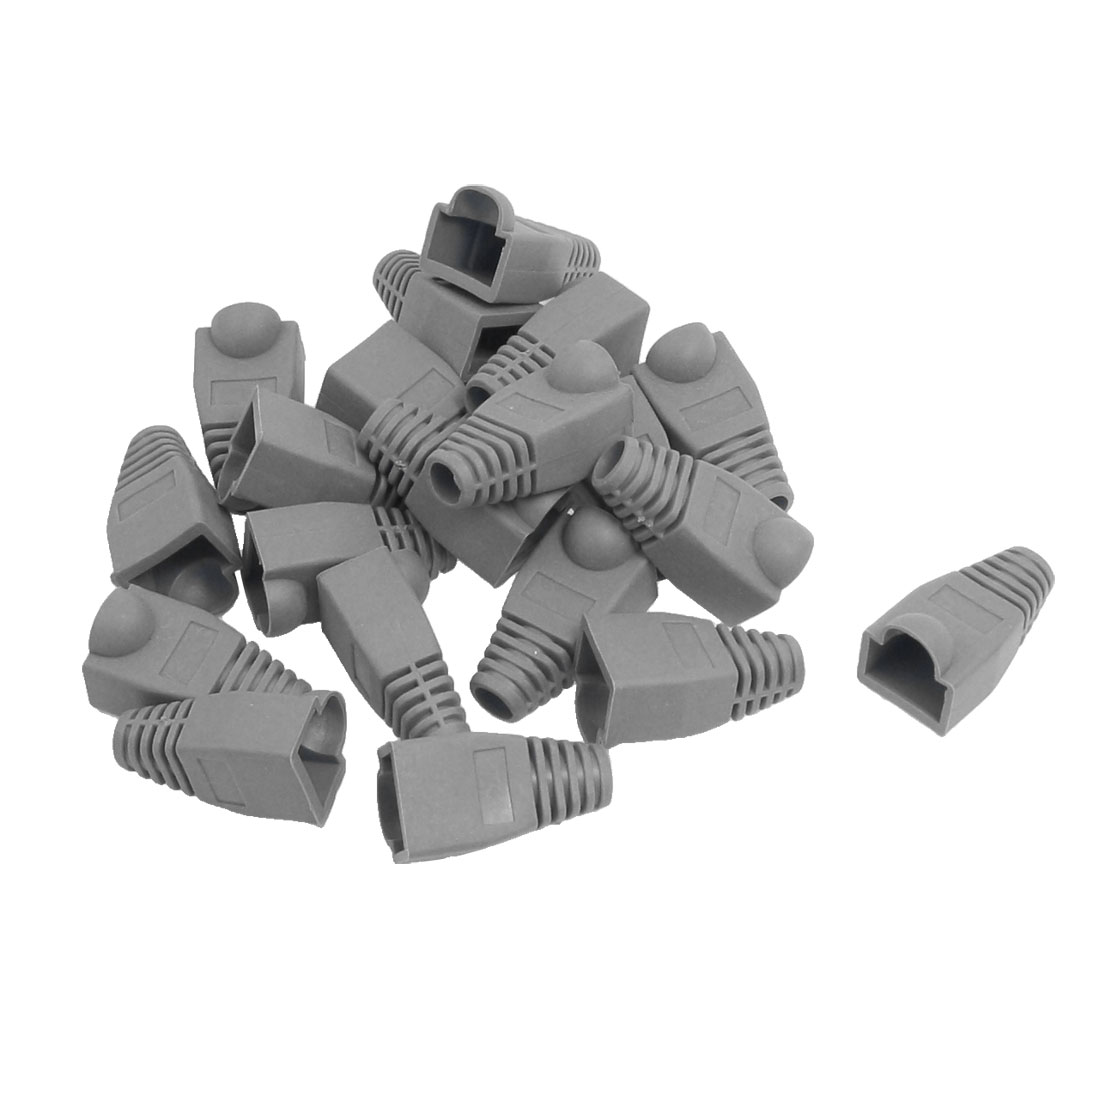 Network Cable Boots Cap Cover for RJ45 Connectors Gray 20 Pieces